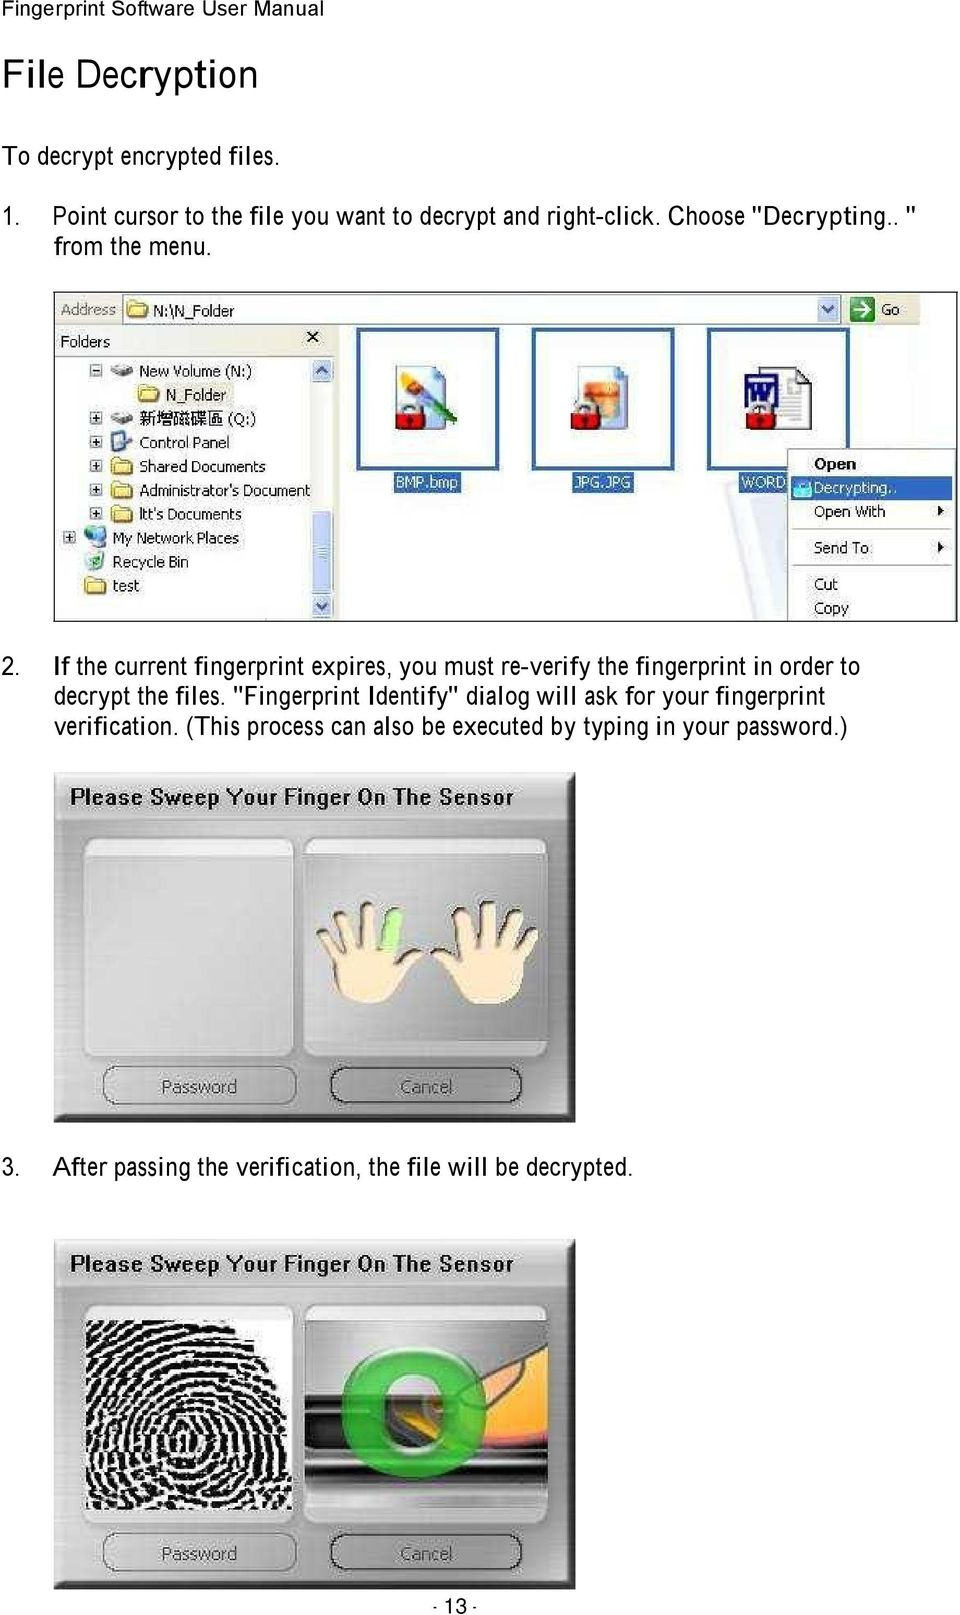 If the current fingerprint expires, you must re-verify the fingerprint in order to decrypt the files.